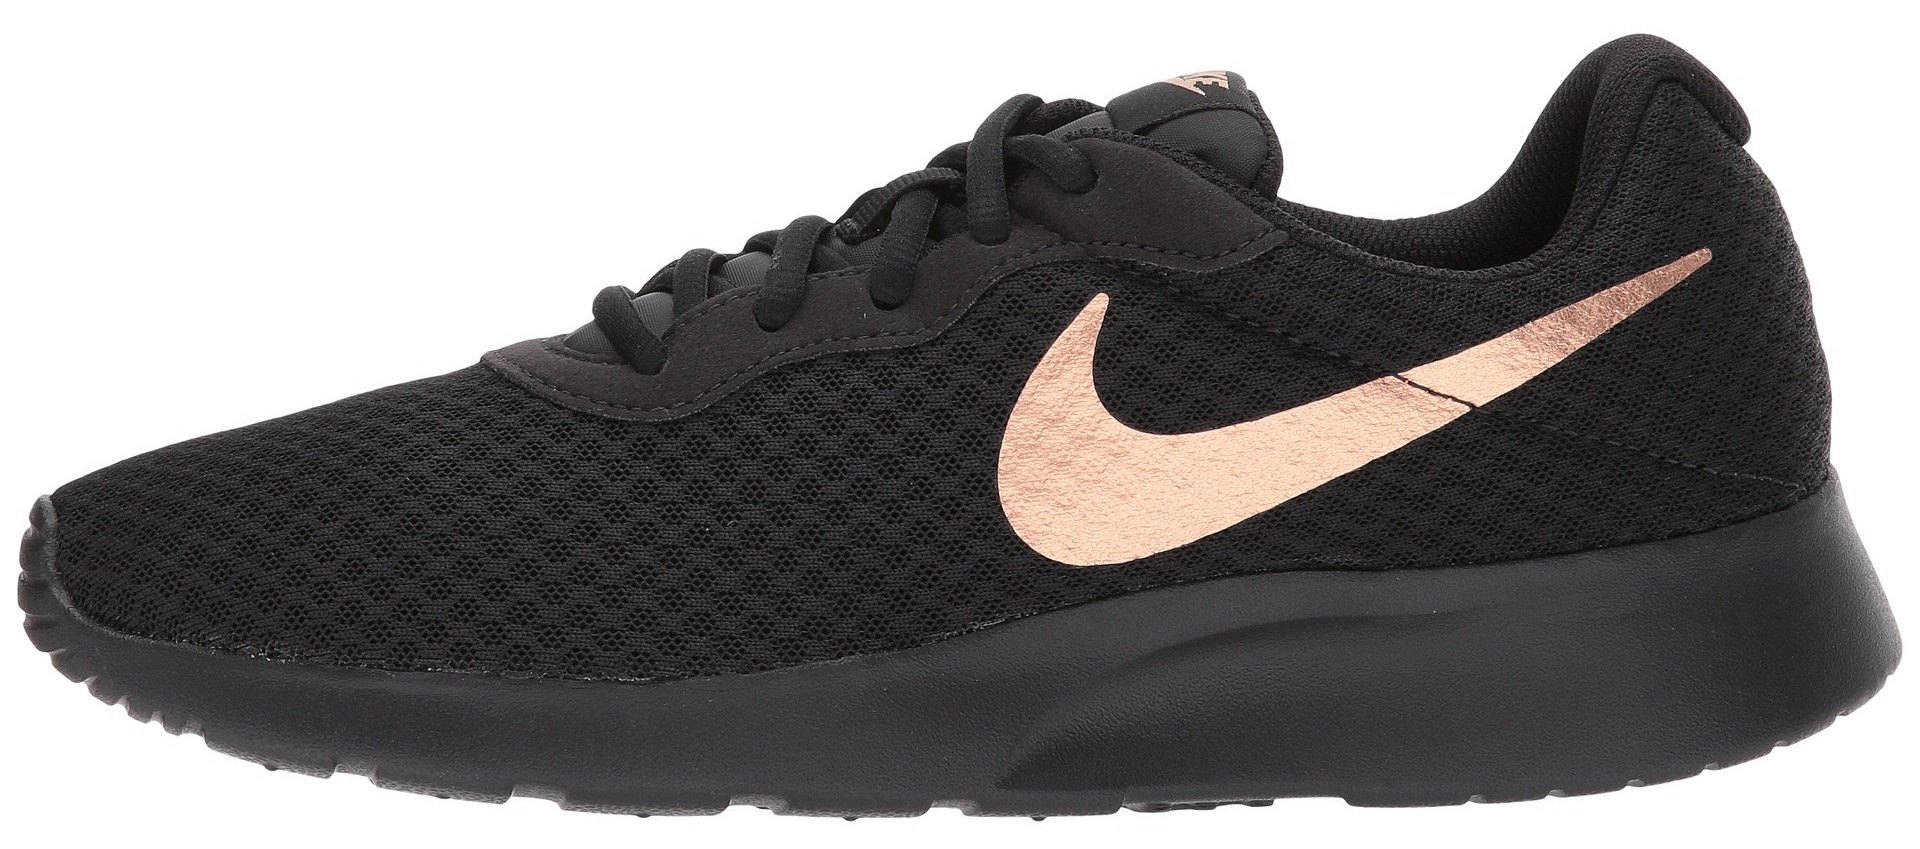 e5fb7282409d9 Our Favorite Nike Street Style Sneakers Are on Sale at Zappos ...